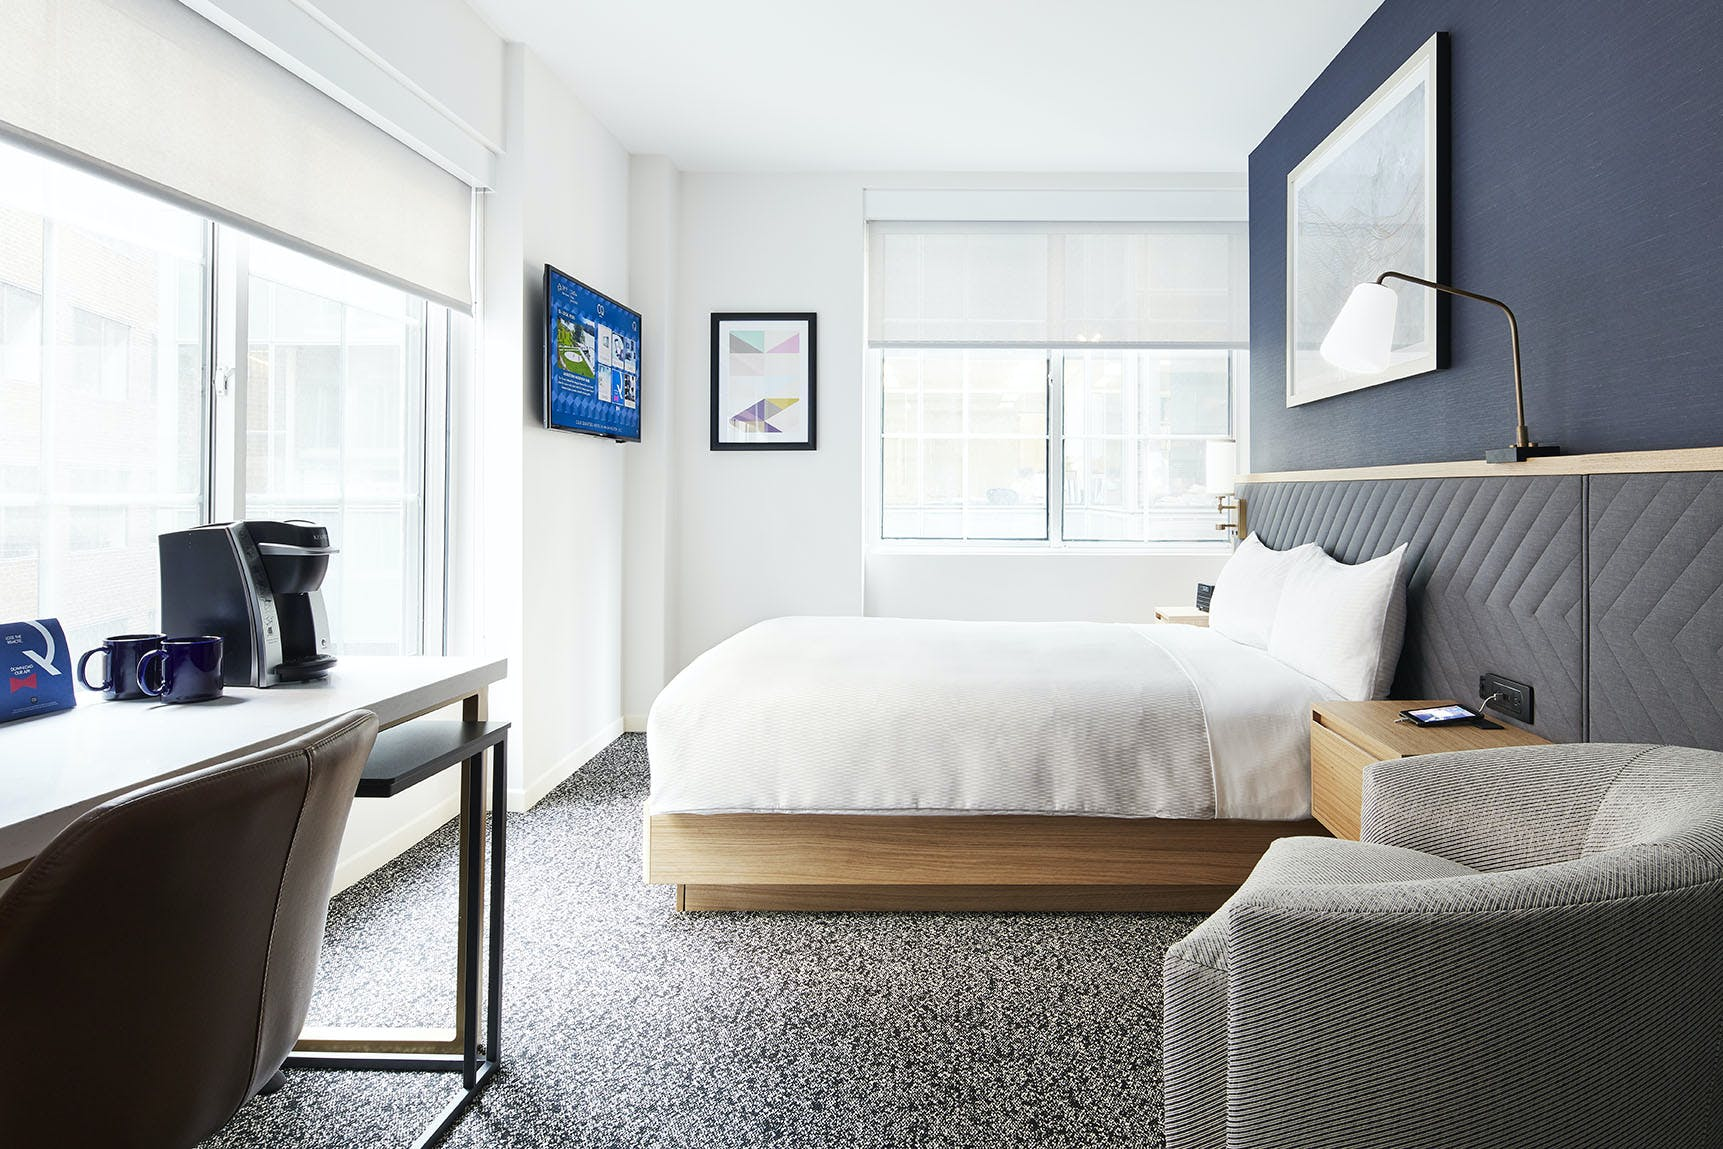 Newly renovated Standard Room at Club Quarters Hotel in Washington DC